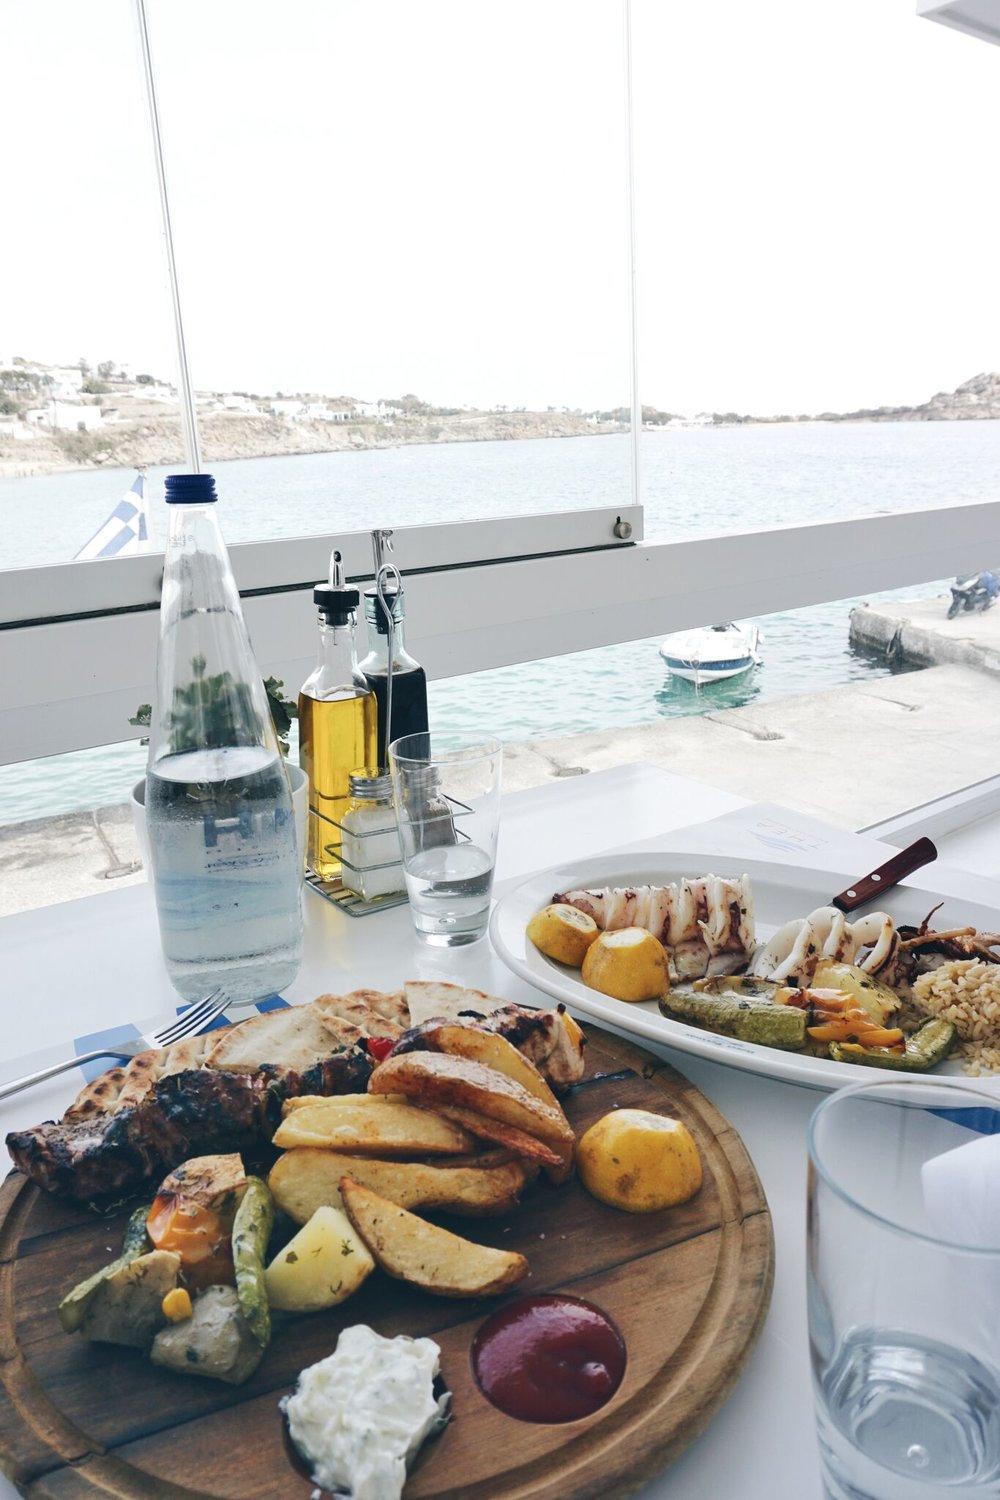 Thea Restaurant in Platis Gialos had a beautiful view, friendly staff and fresh food